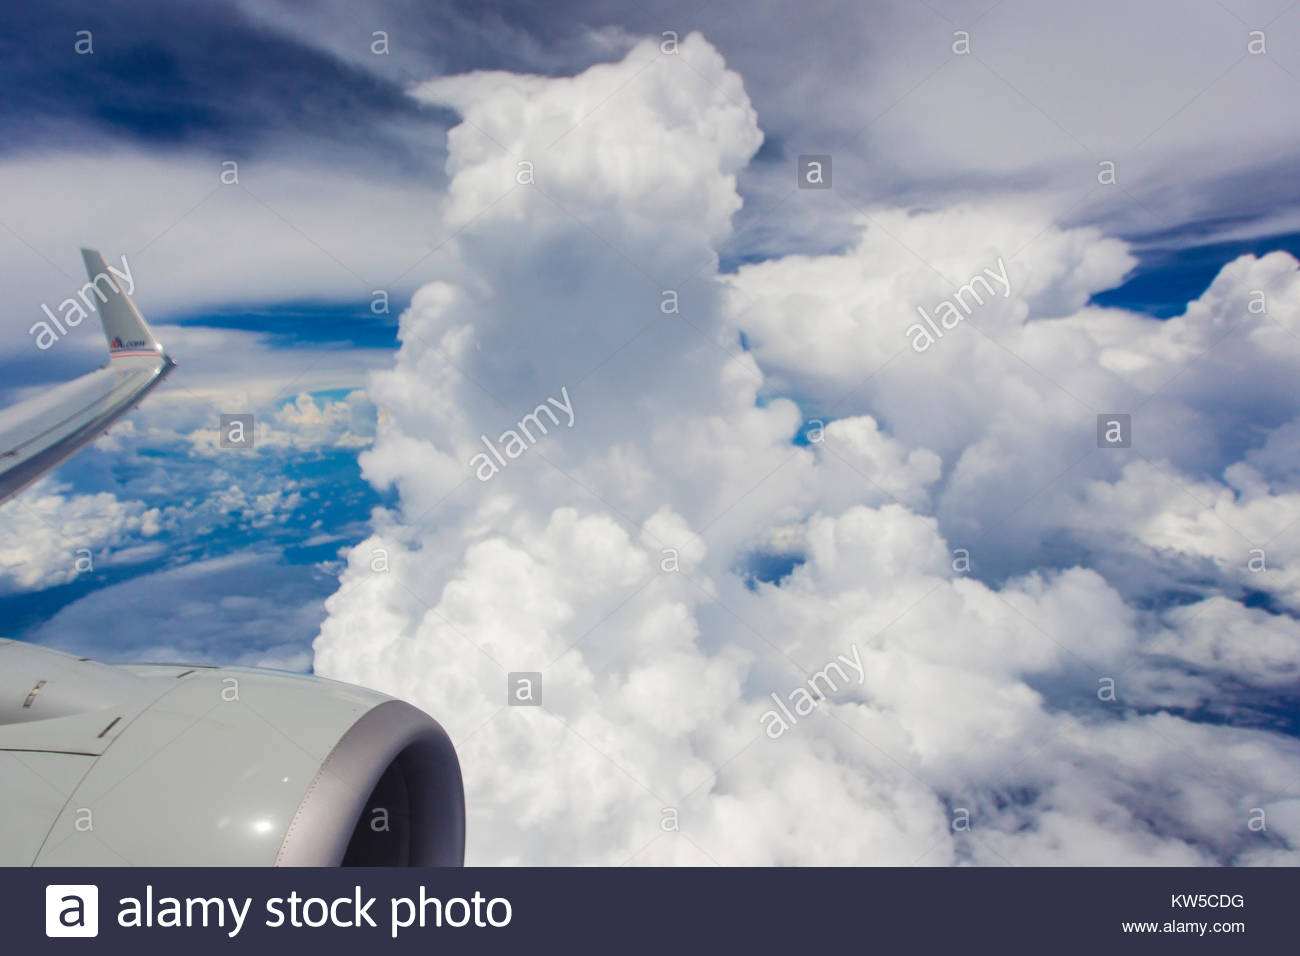 Cumulous cloud shooting up into the atmosphere, seen from a passenger airplane window. - Stock Image